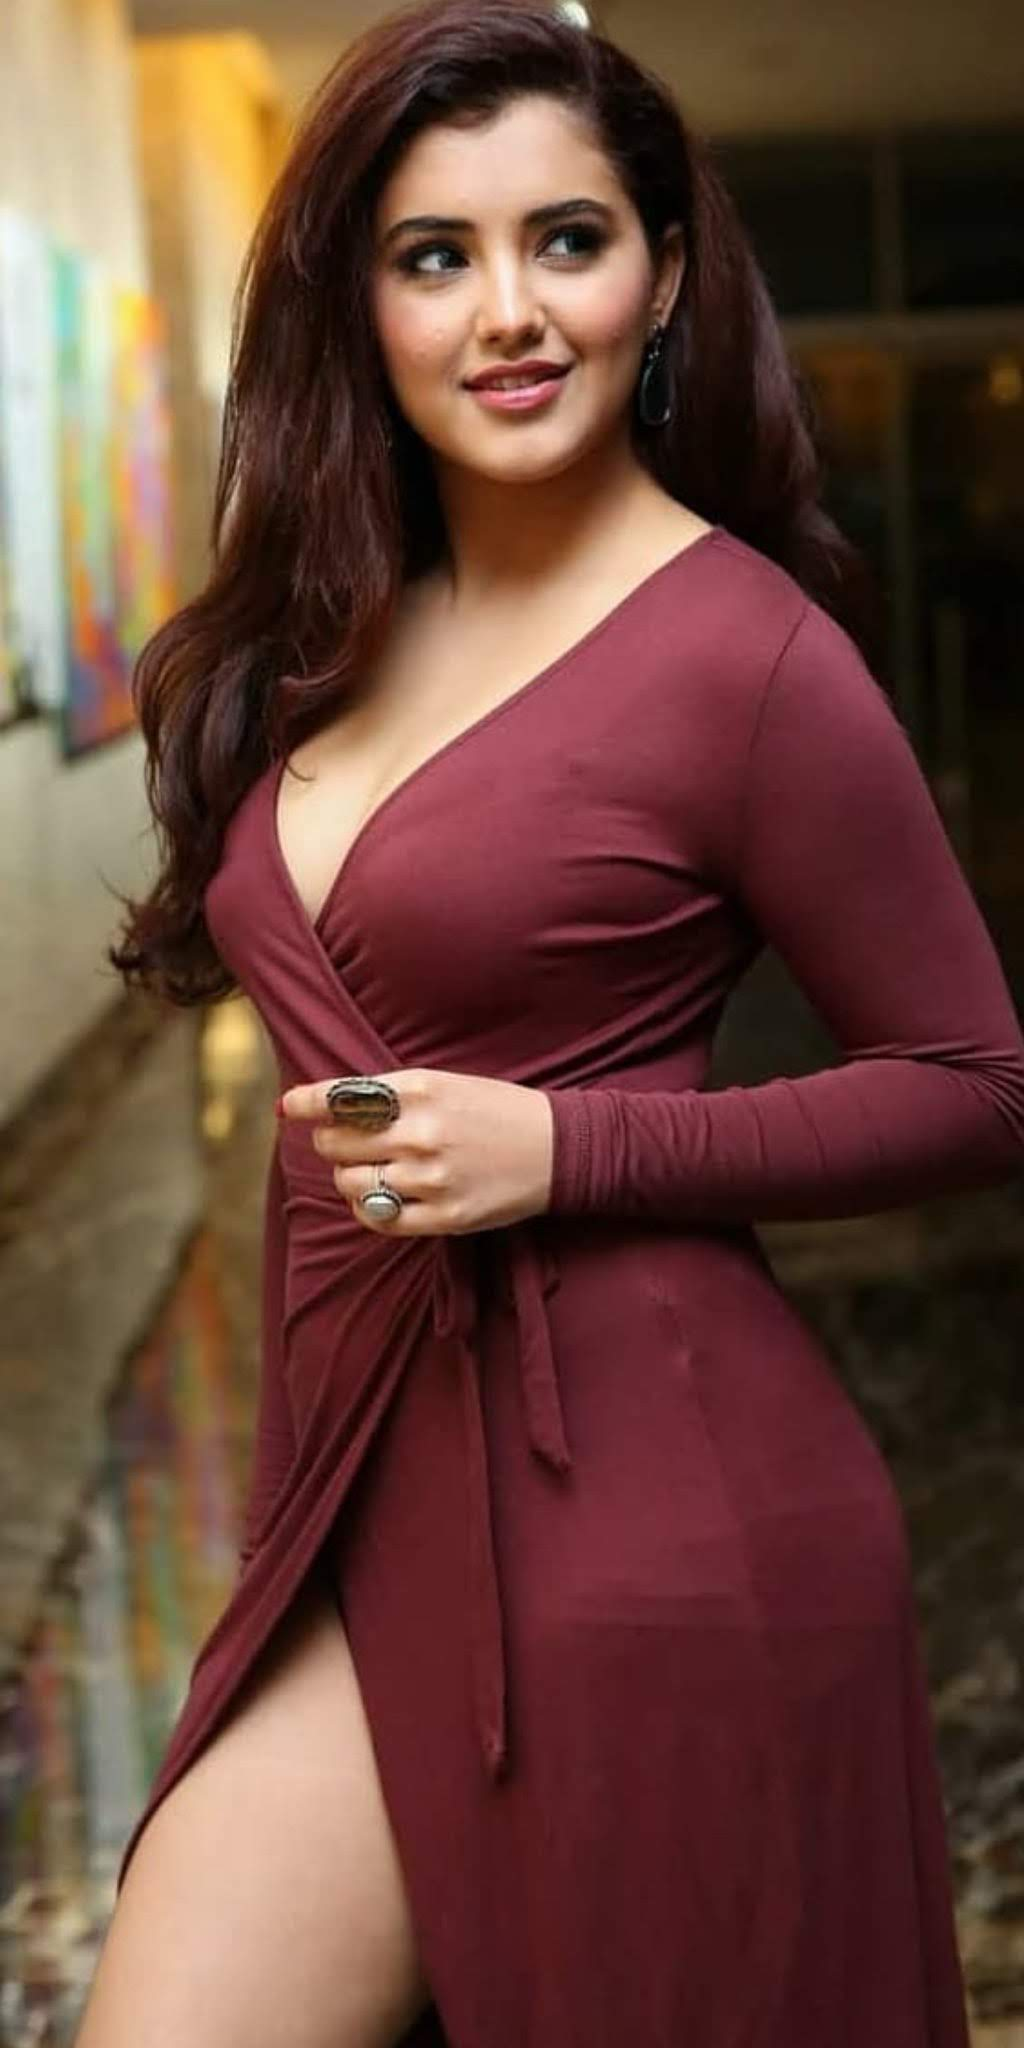 malvika-sharma-hot-sexy-1441324